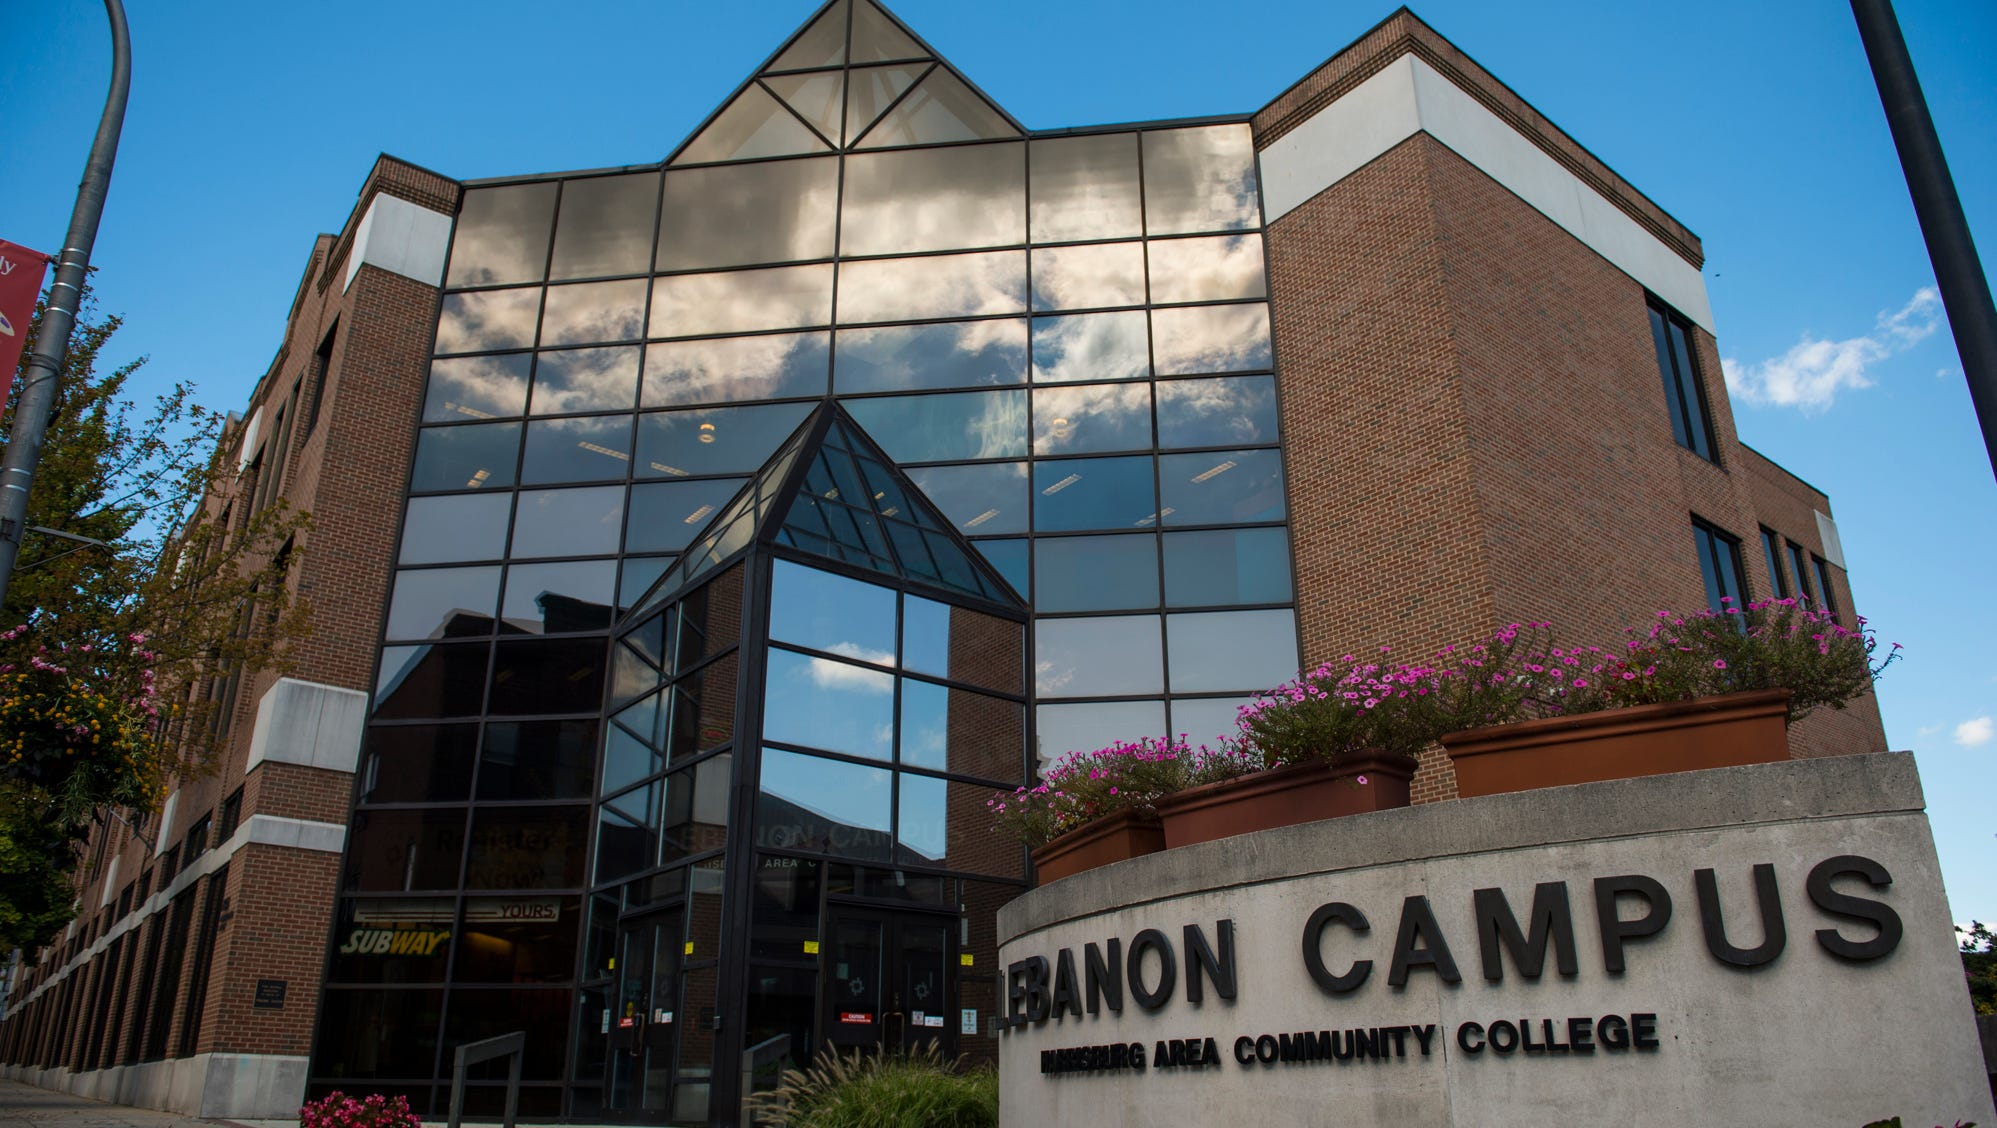 hacc lancaster campus map Hacc May Be Selling Or Leasing Lebanon Campus Would Relocate hacc lancaster campus map